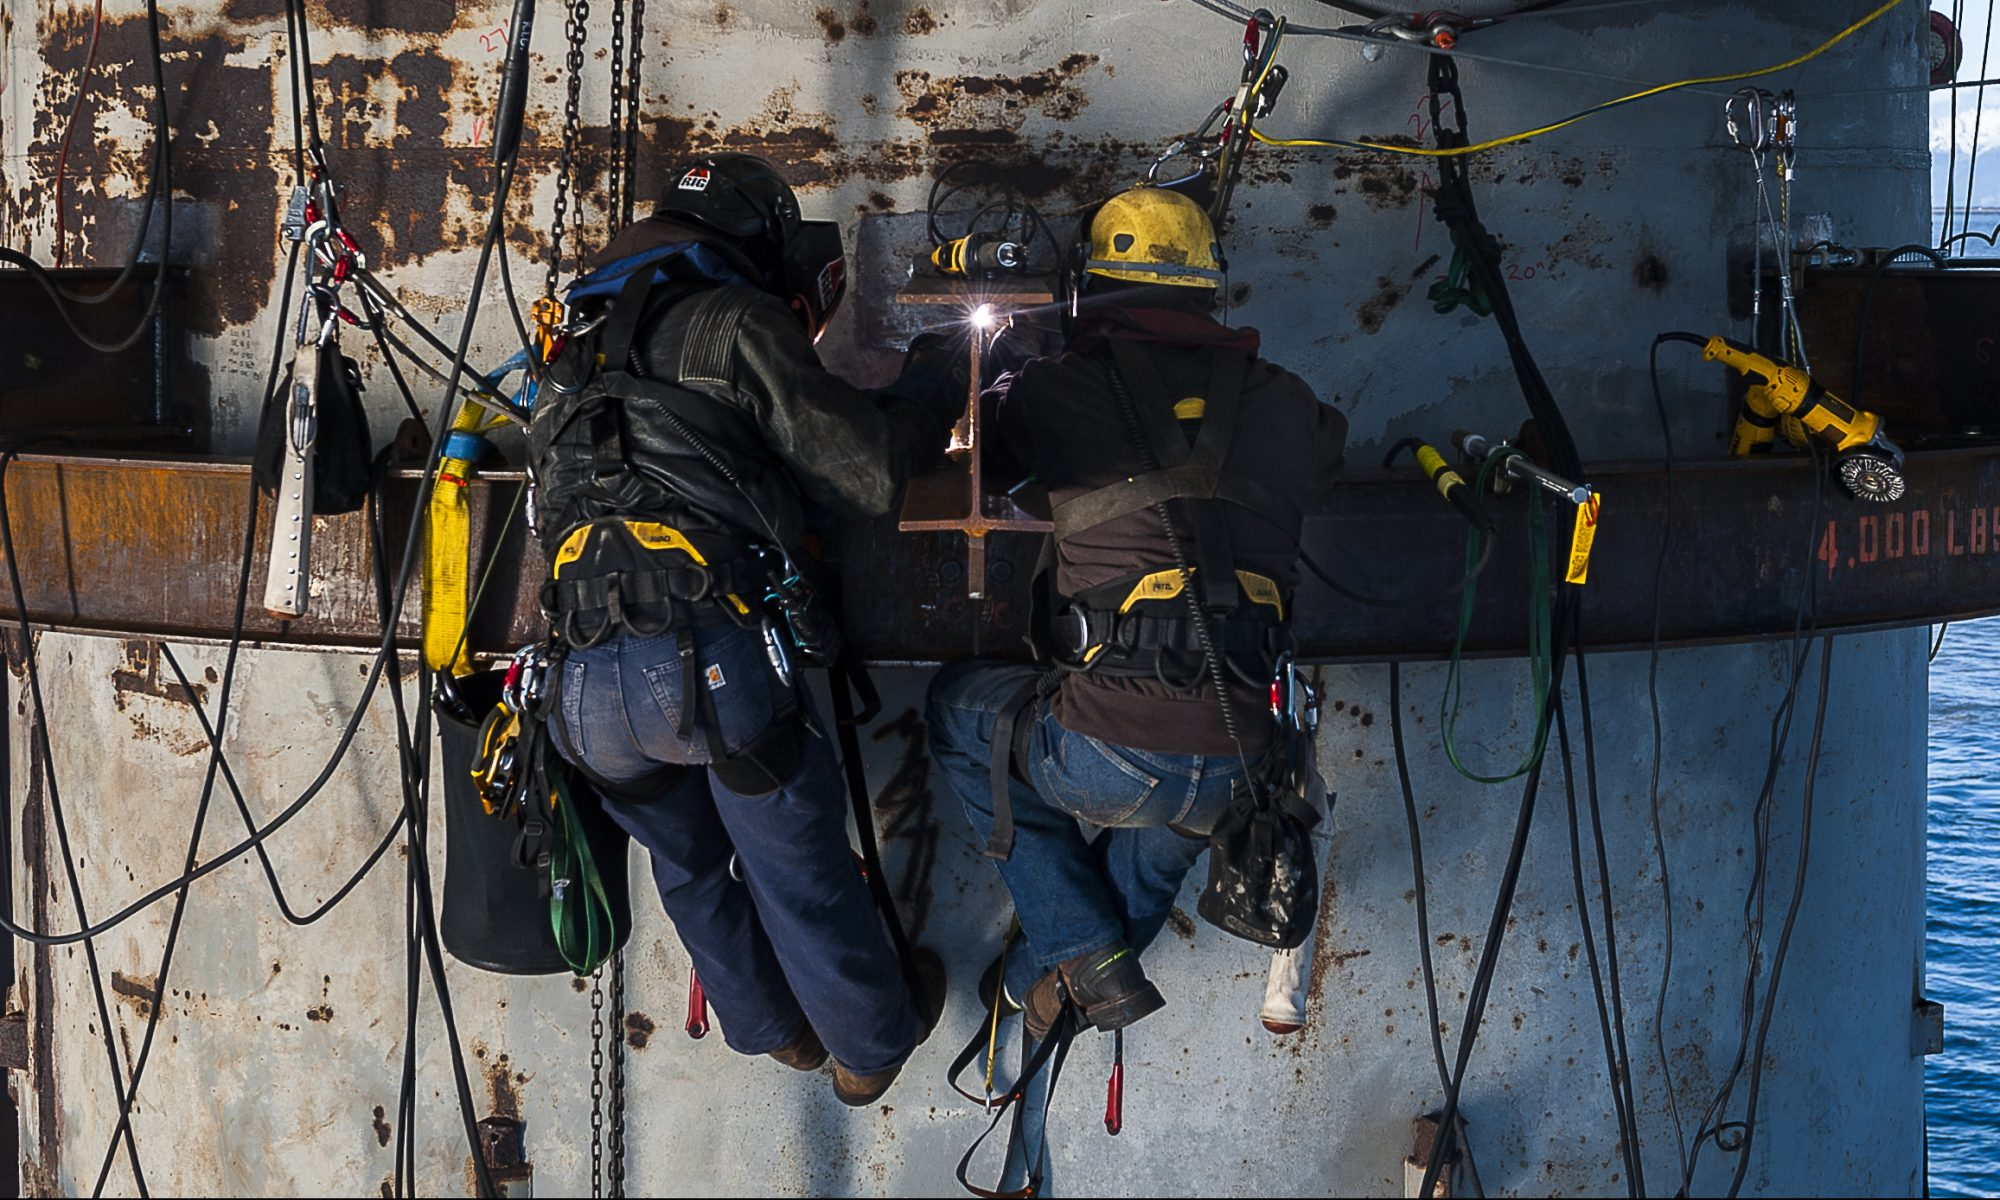 Two rope access technician stop to study plans along side an offshore oil refinery over 100 feet in the air.